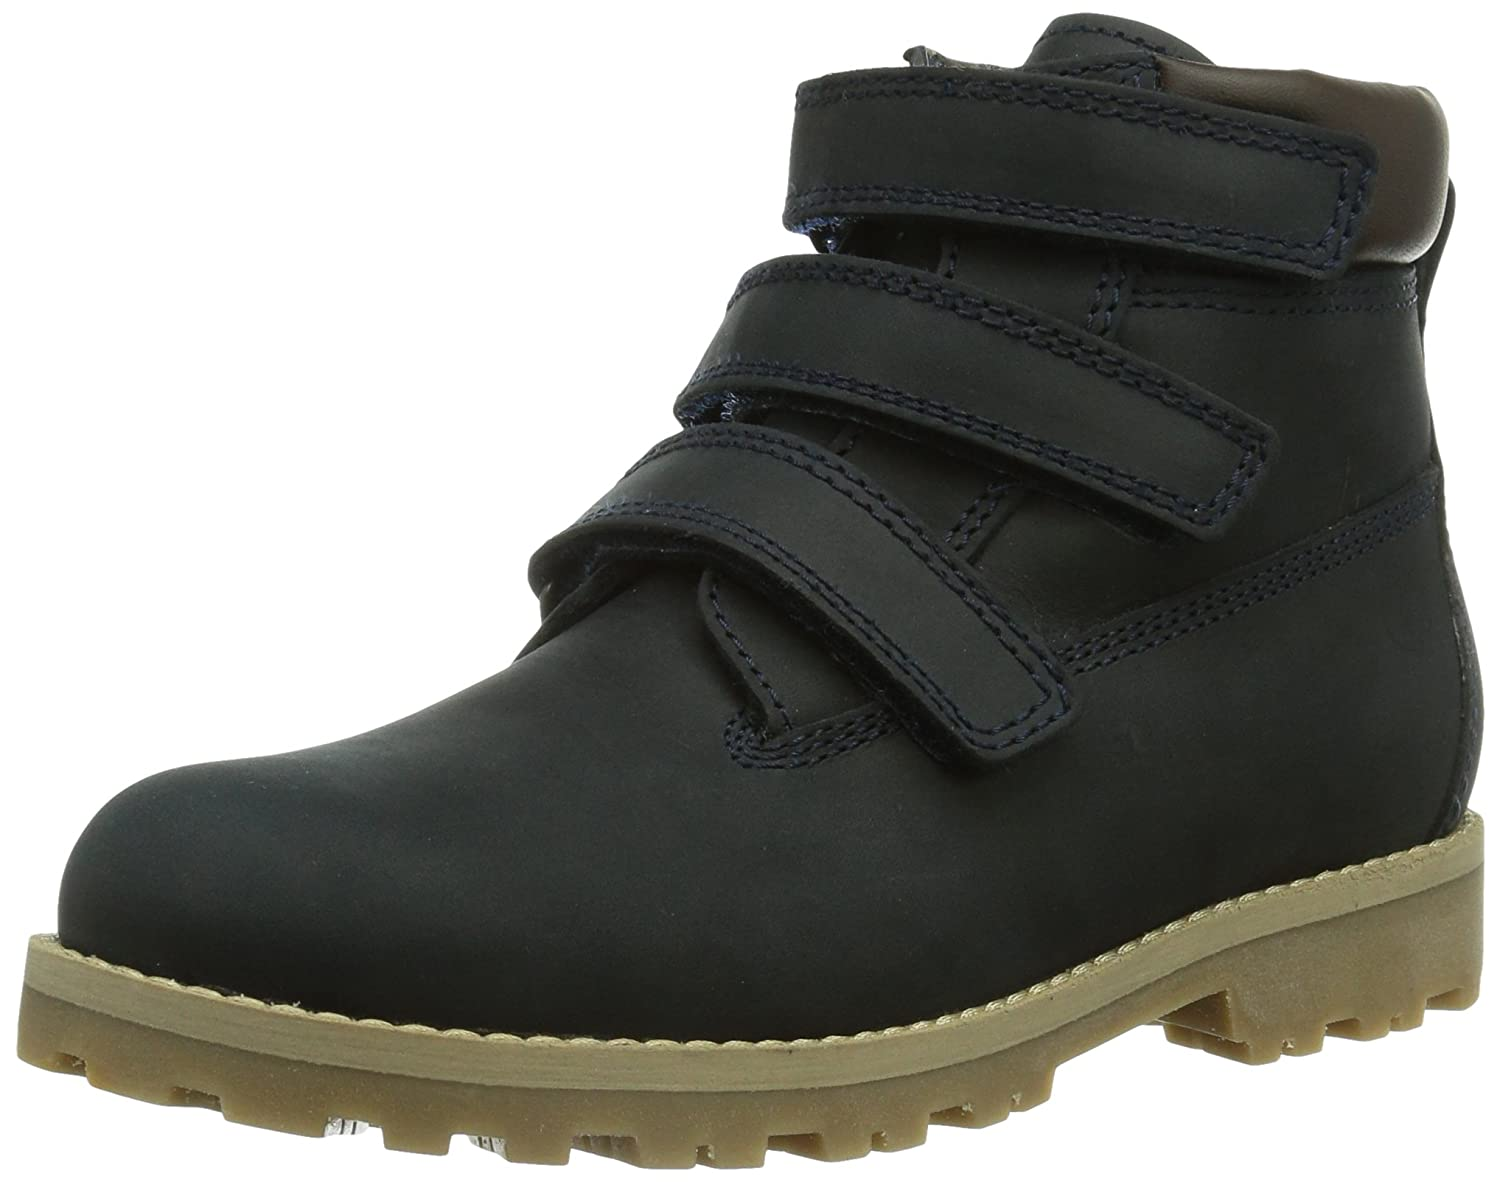 Froddo Boys/Girls Dark Blue Ankle Boot G3110038-K Unisex-Kinder Ungefütterte Schneestiefel